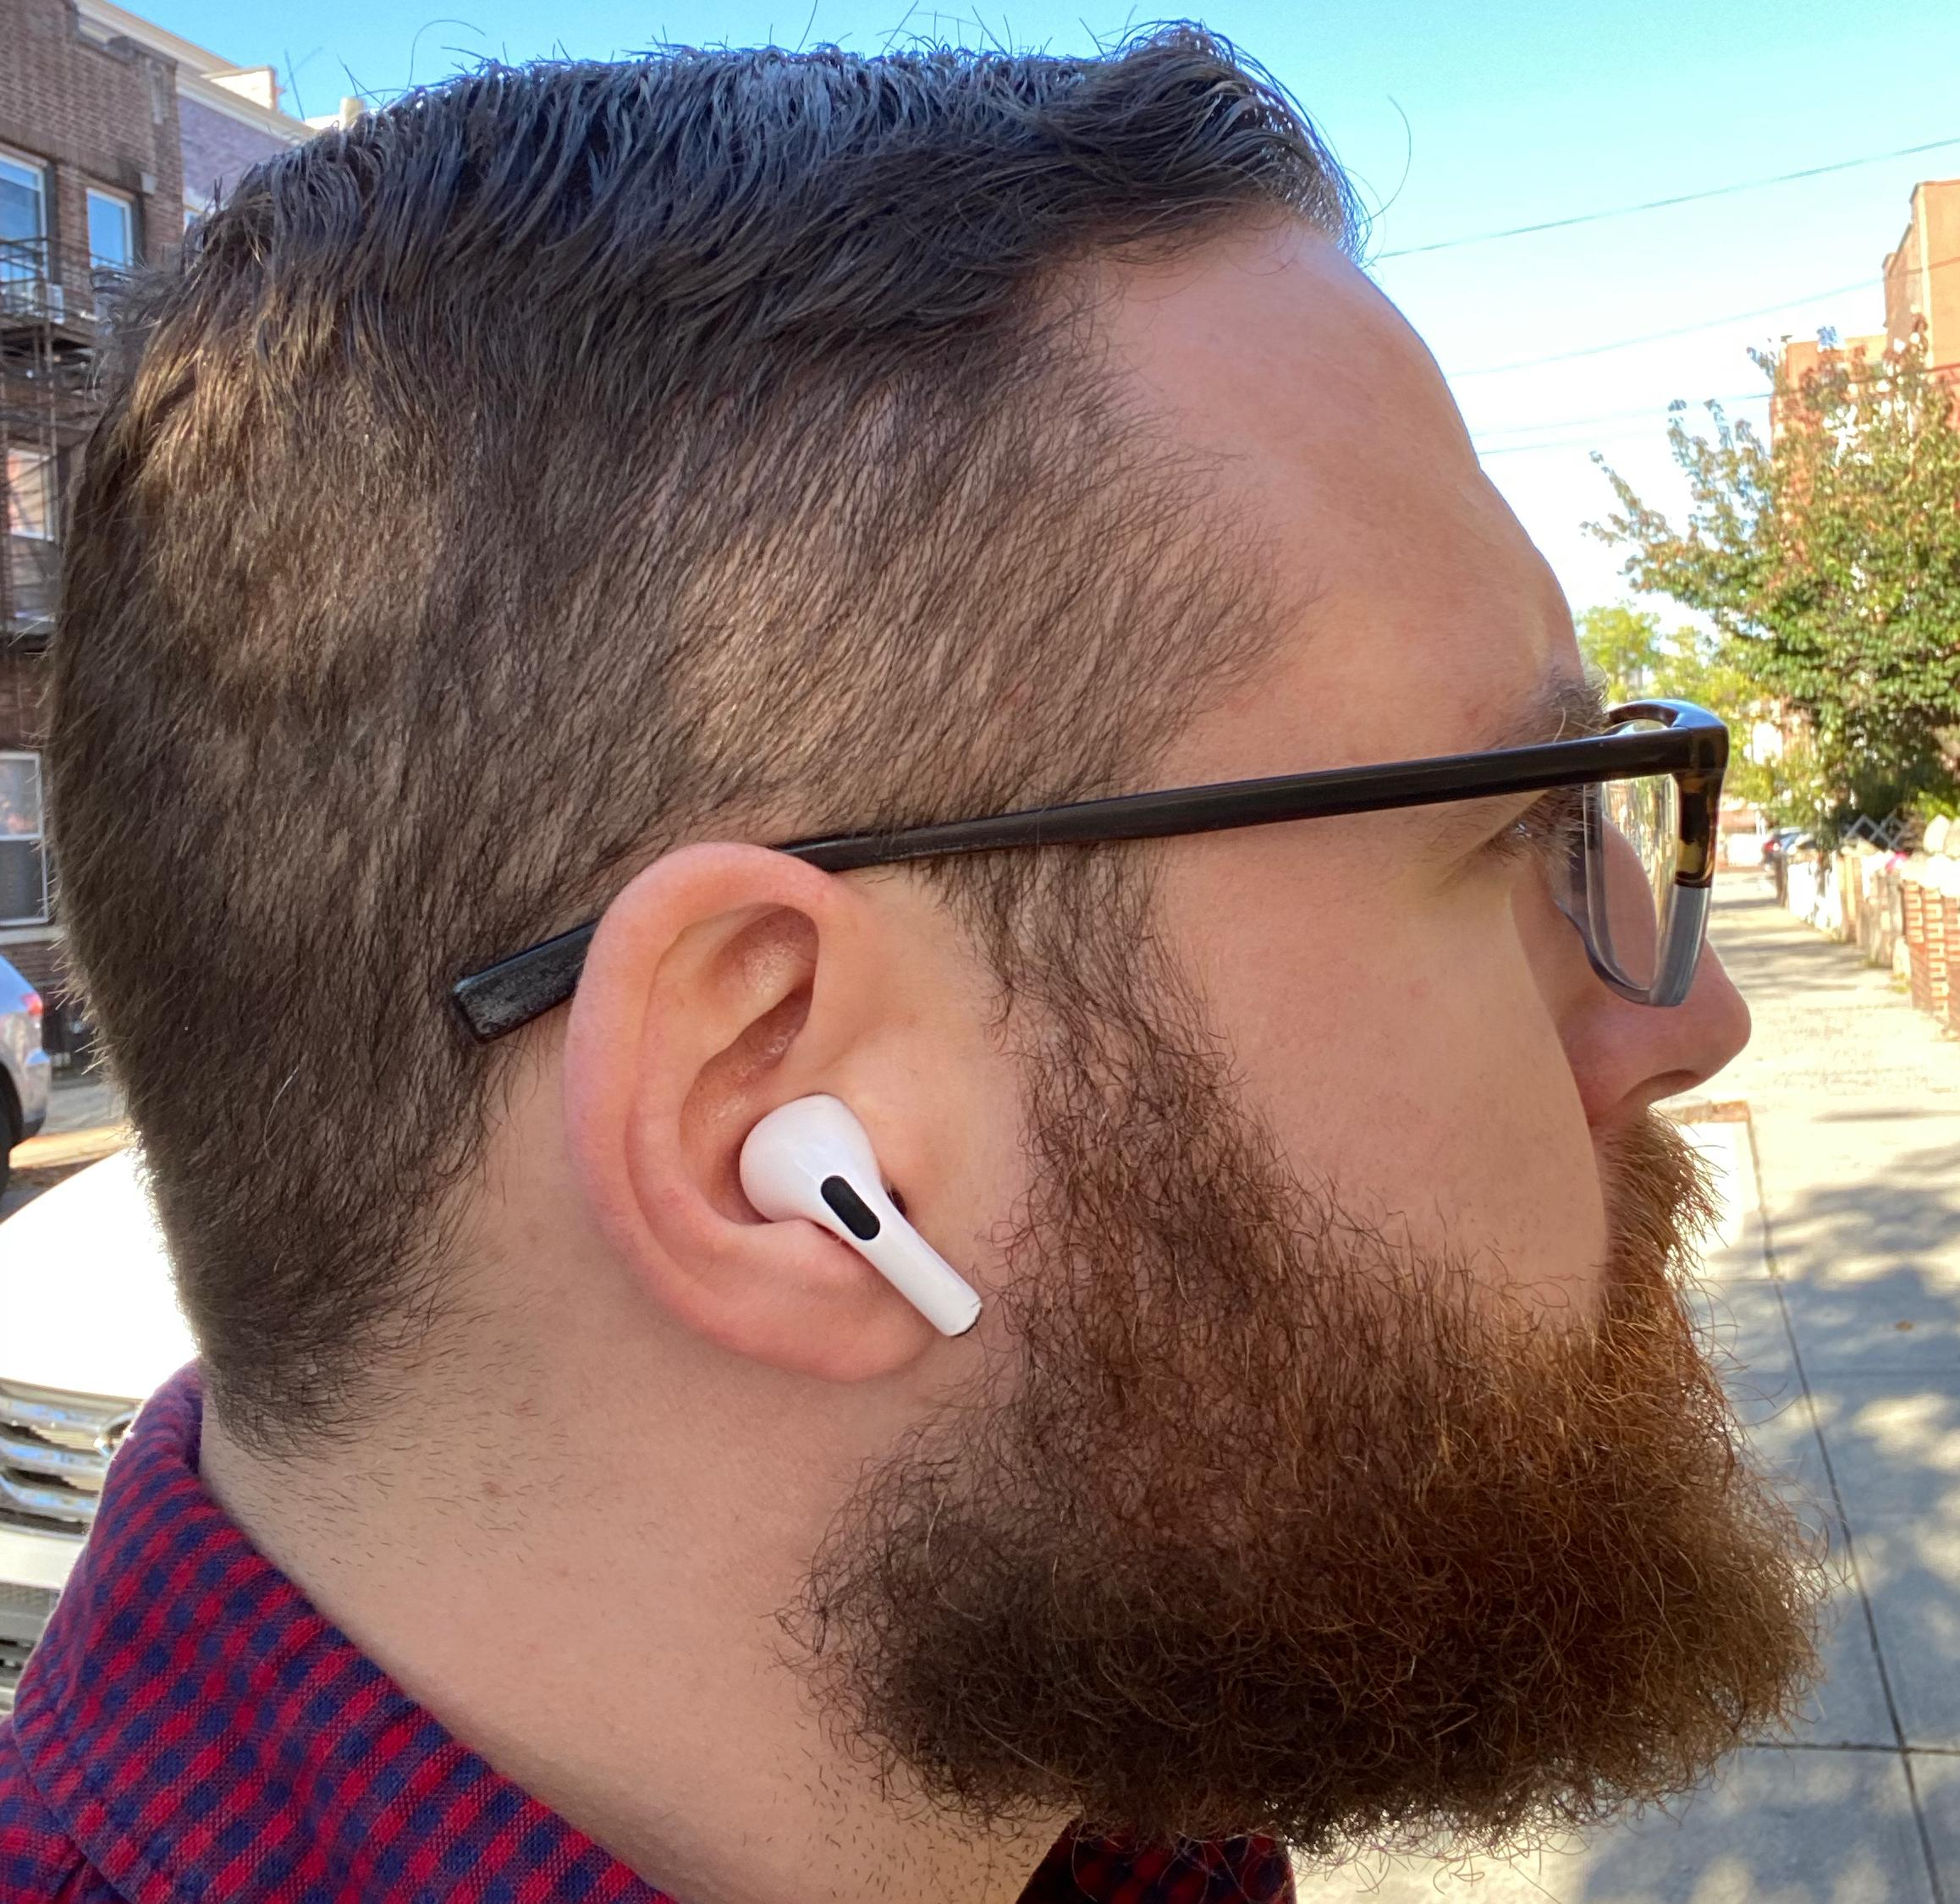 Apple's AirPods Pros could be a $6 billion business in 2020